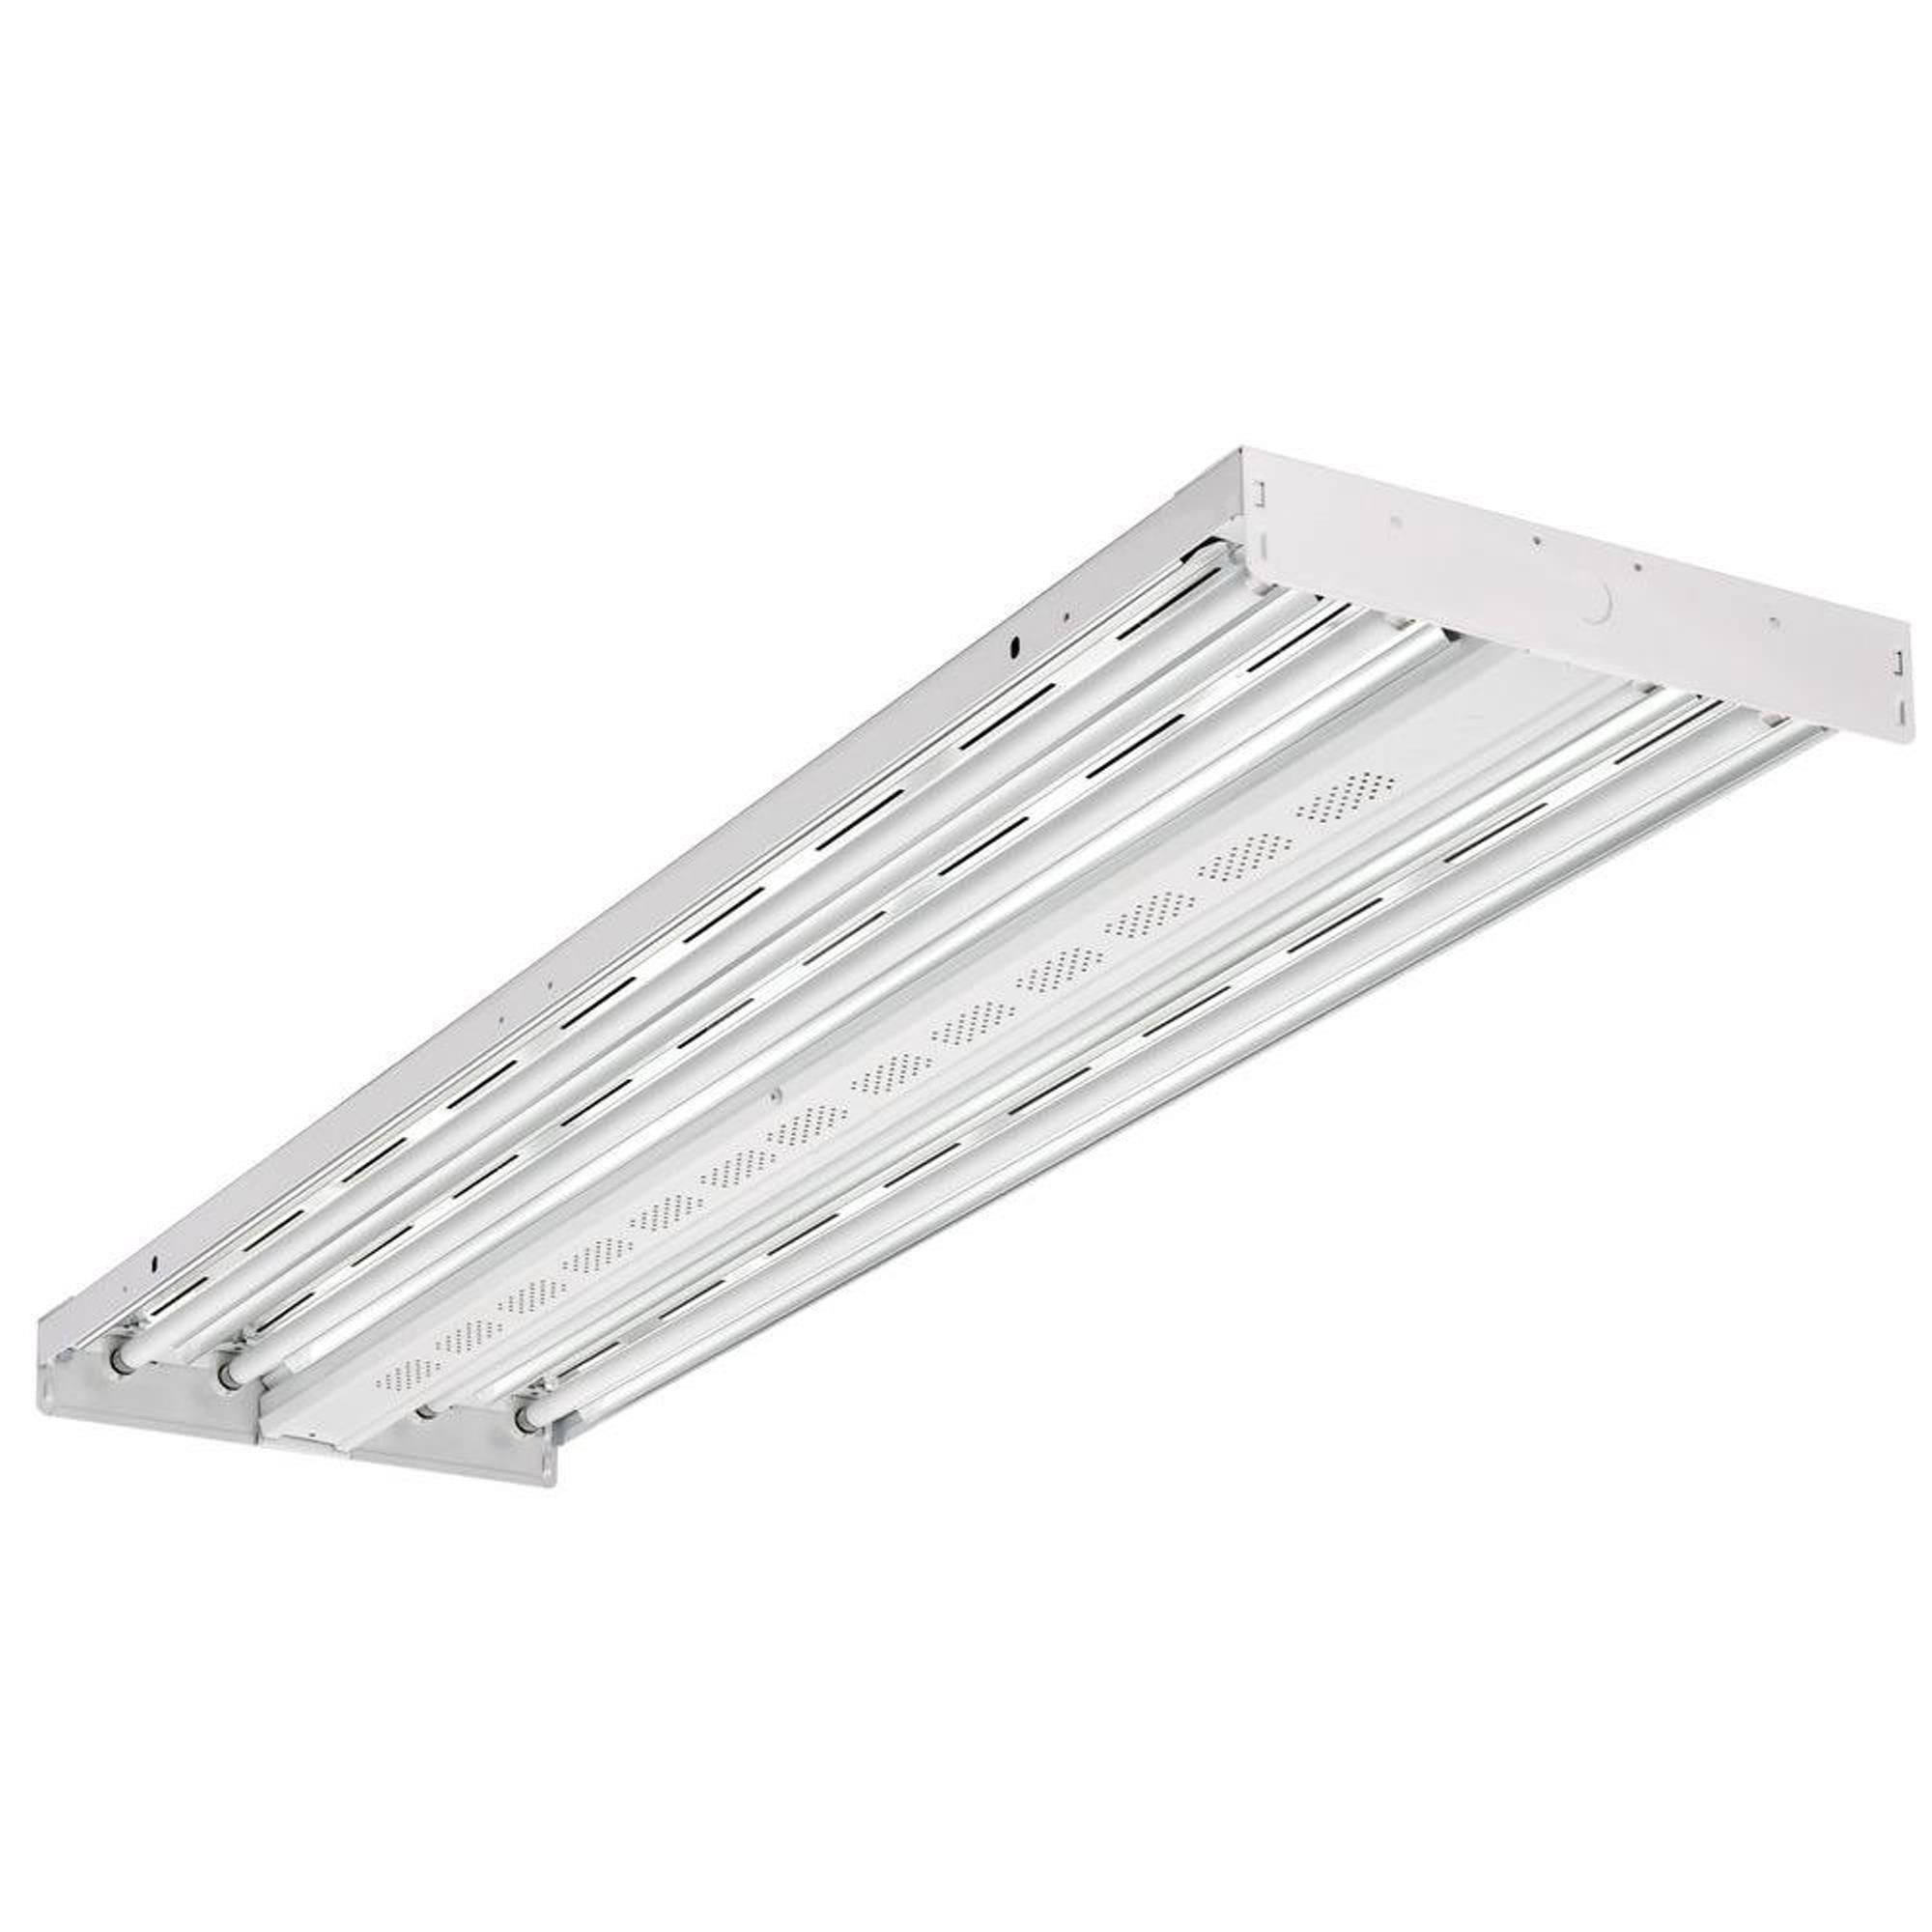 Lithonia Lighting I Beam White Aluminum Fluorescent High Bay Light